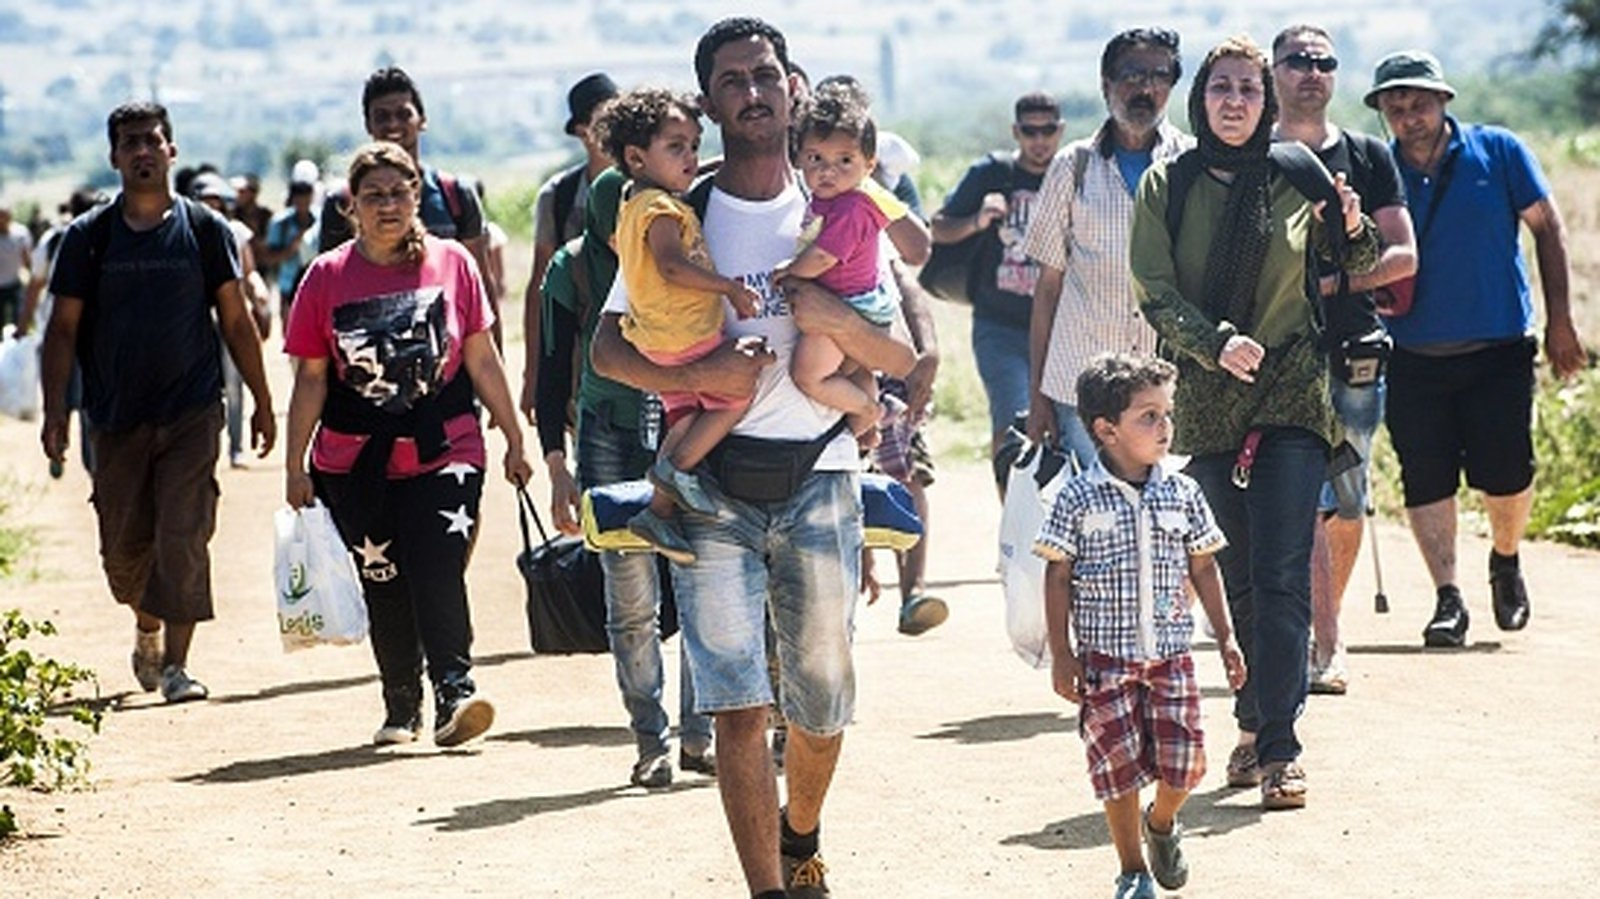 Hungary appeals for assistance with refugee crisis